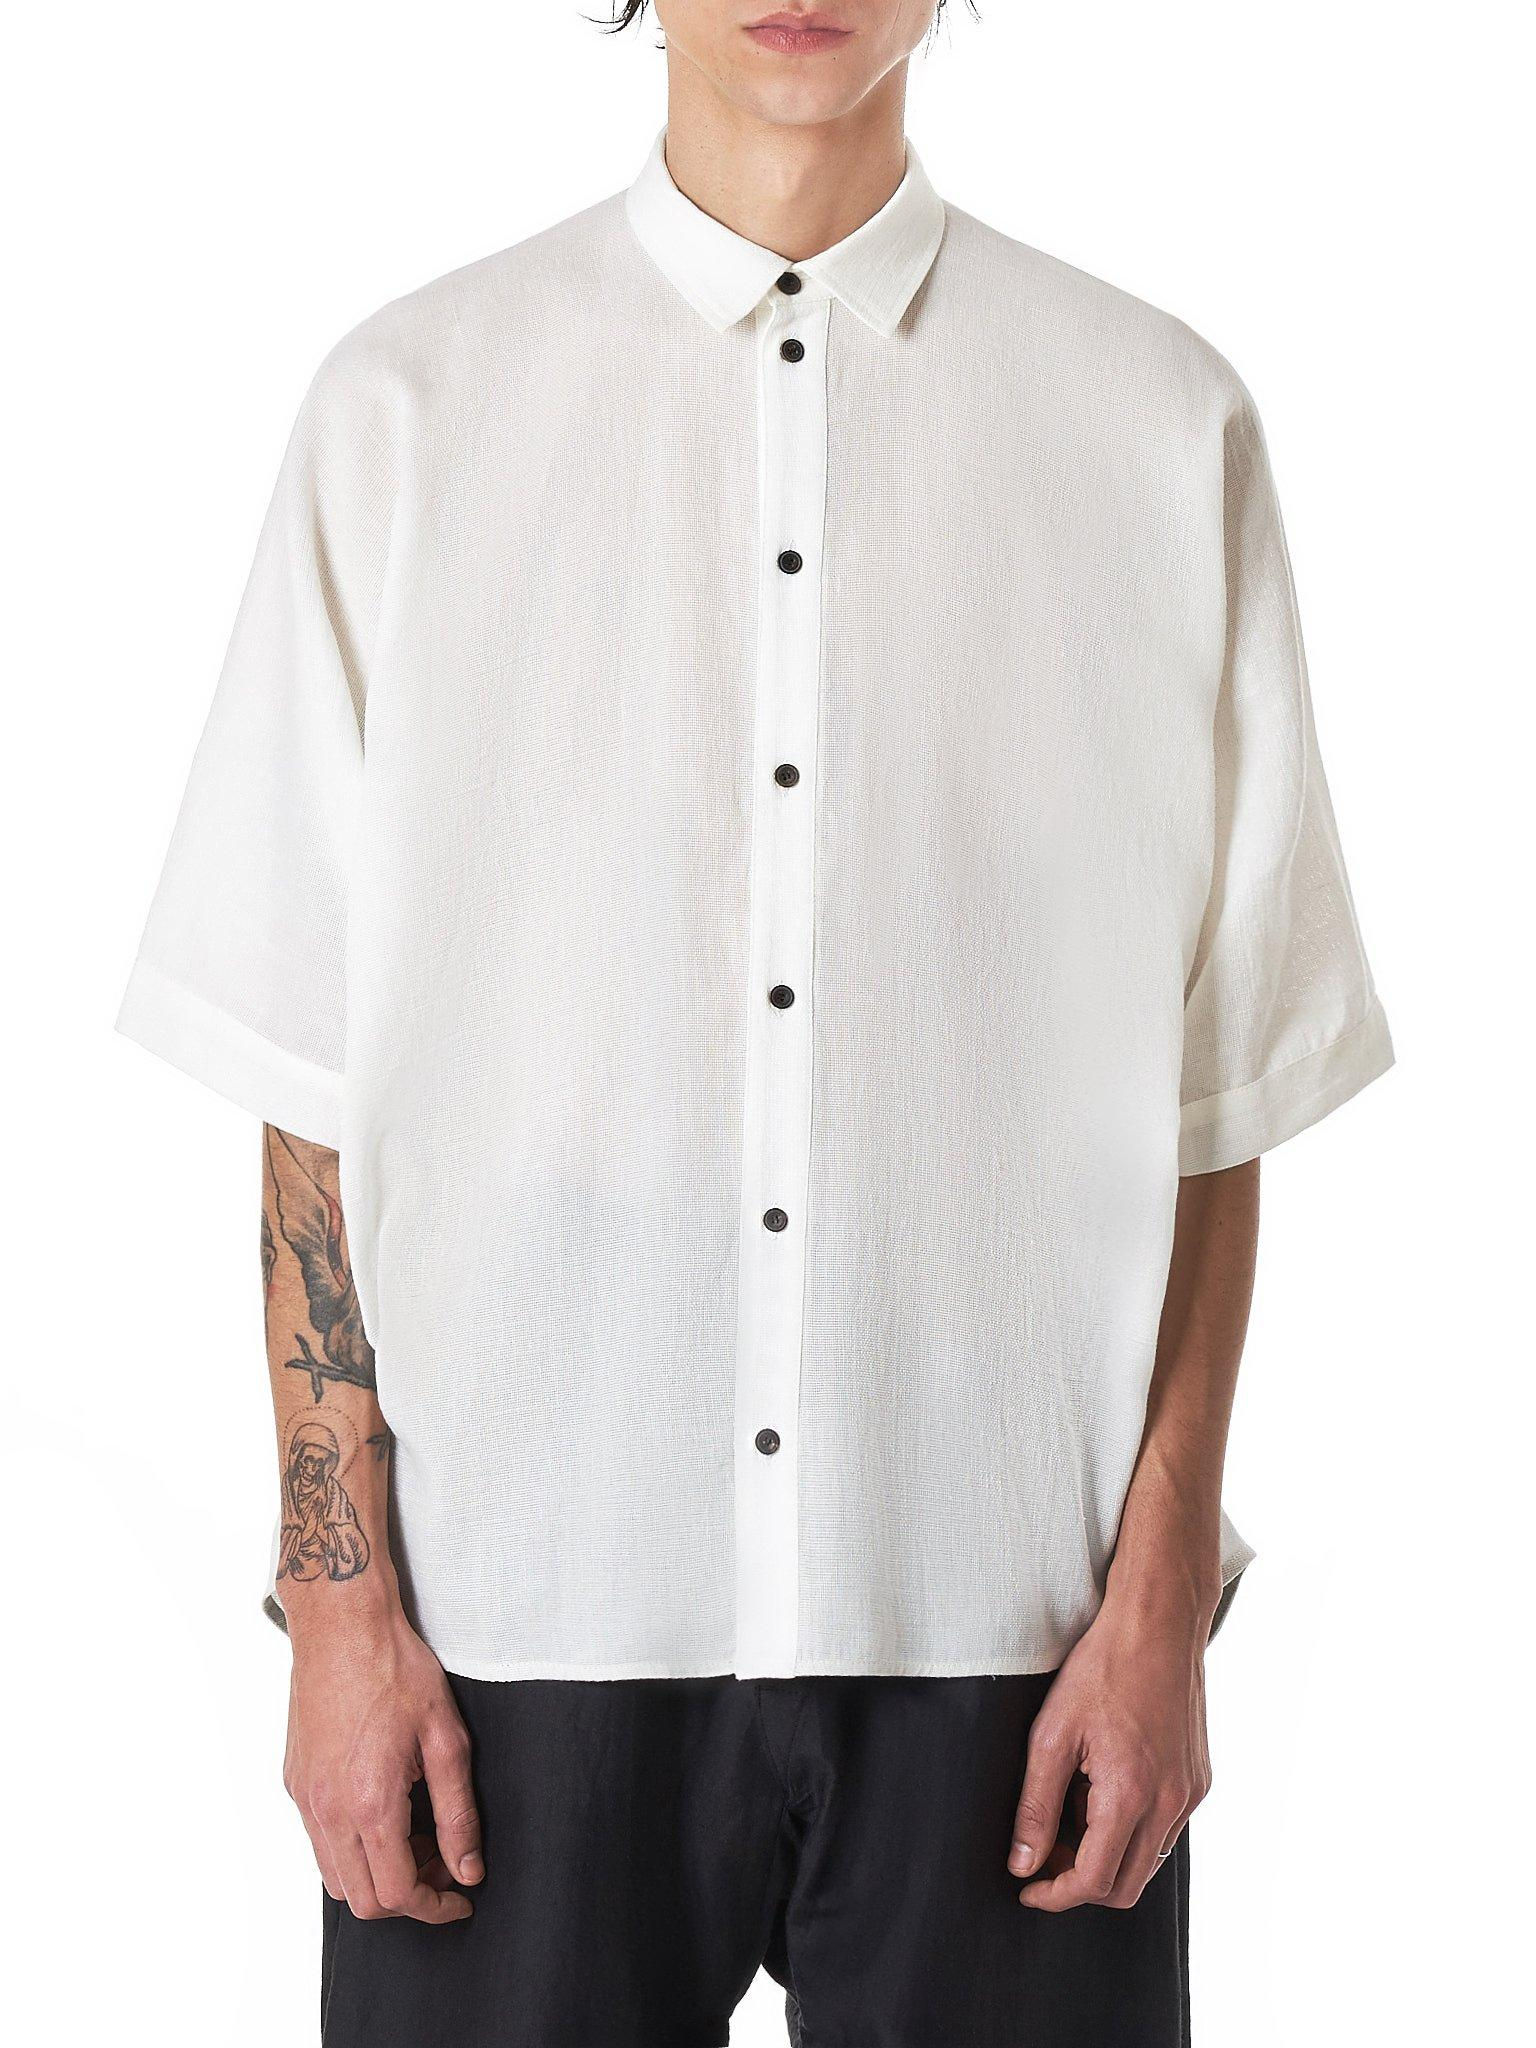 69f5c70a8d8 Lyst - Jan Jan Van Essche Boxy Shirt in White for Men